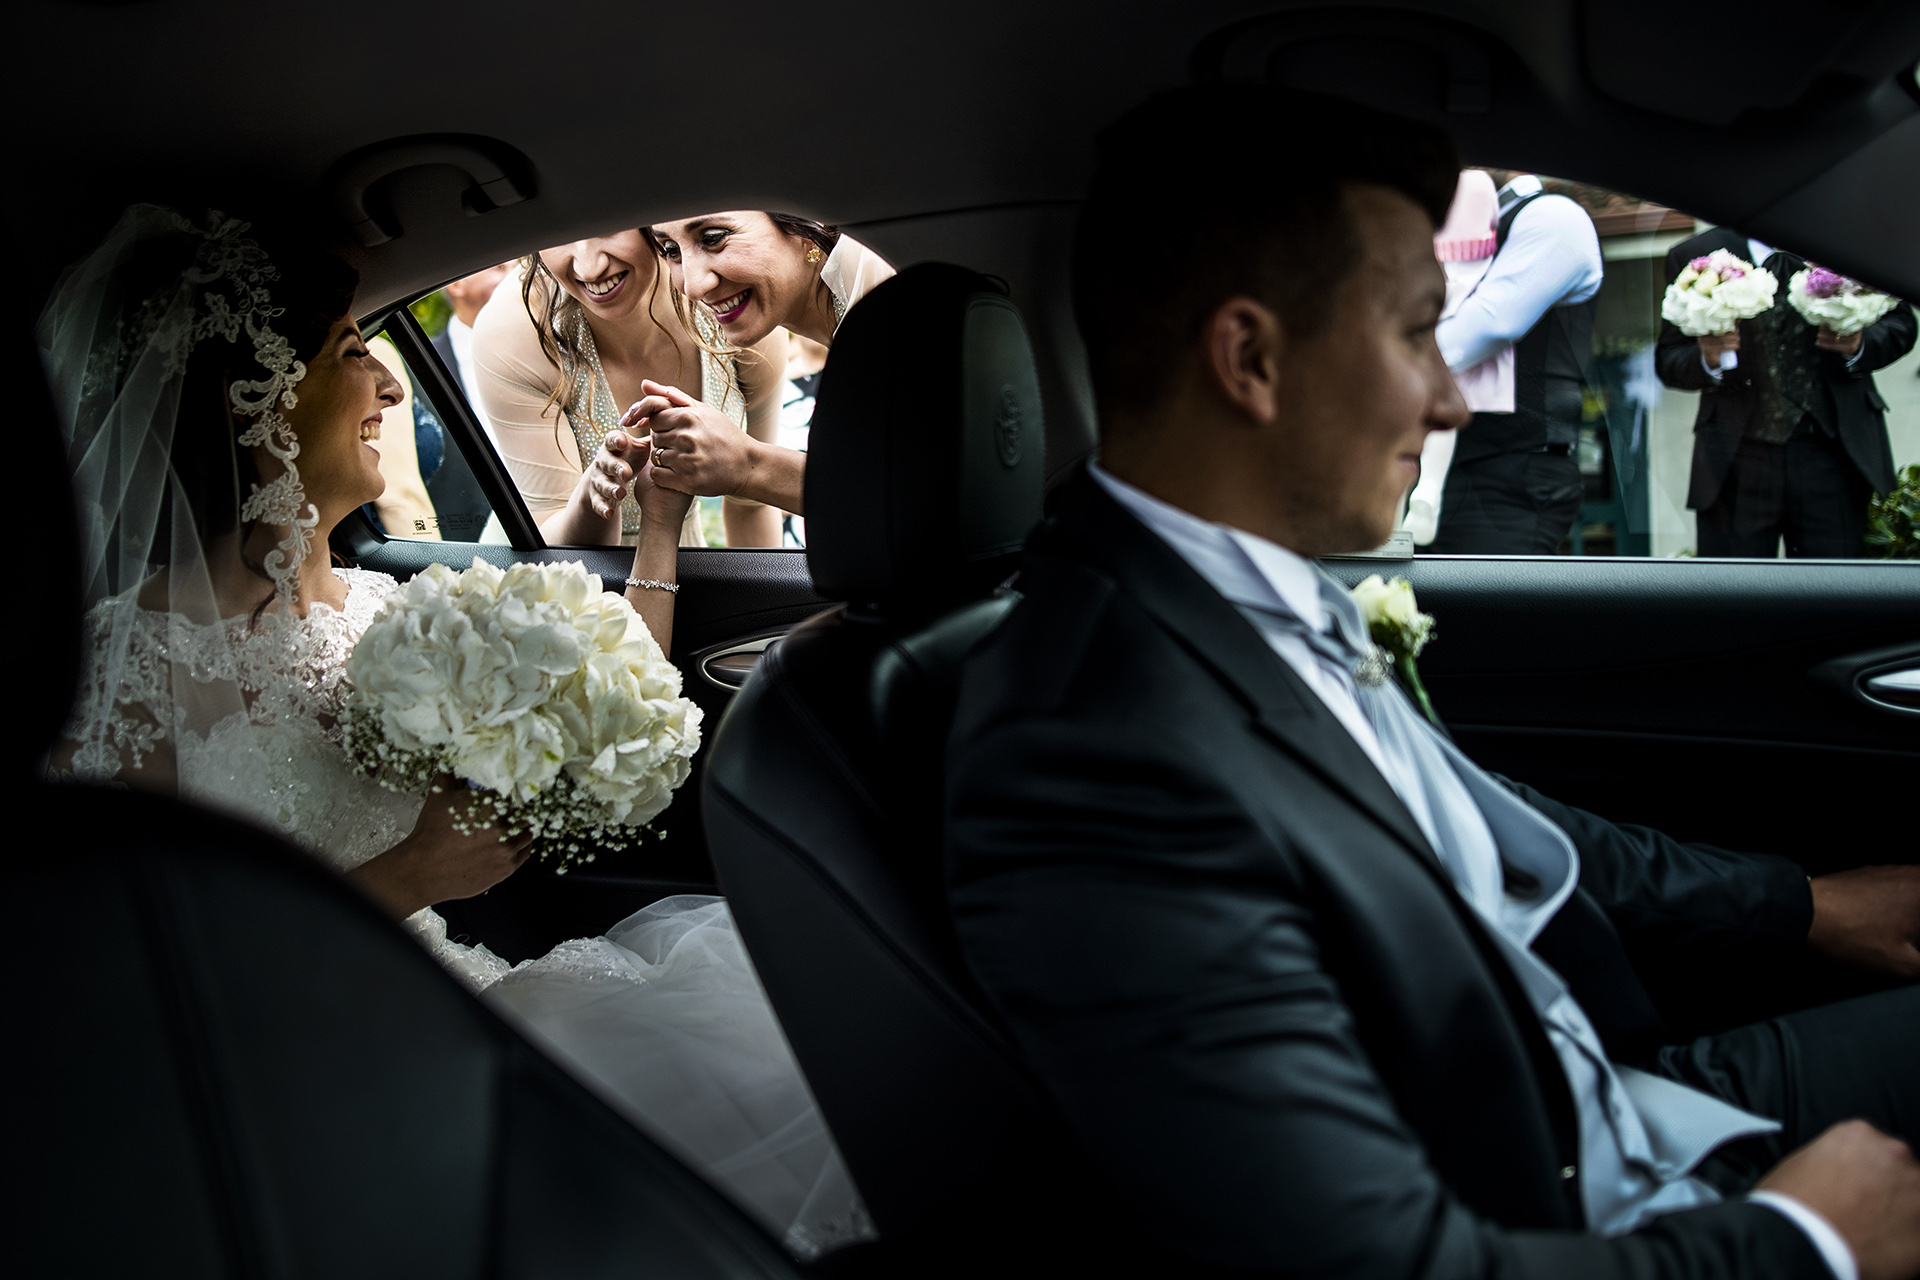 Pasquale Minniti, of Reggio Calabria, is a wedding photographer for reggio calabria